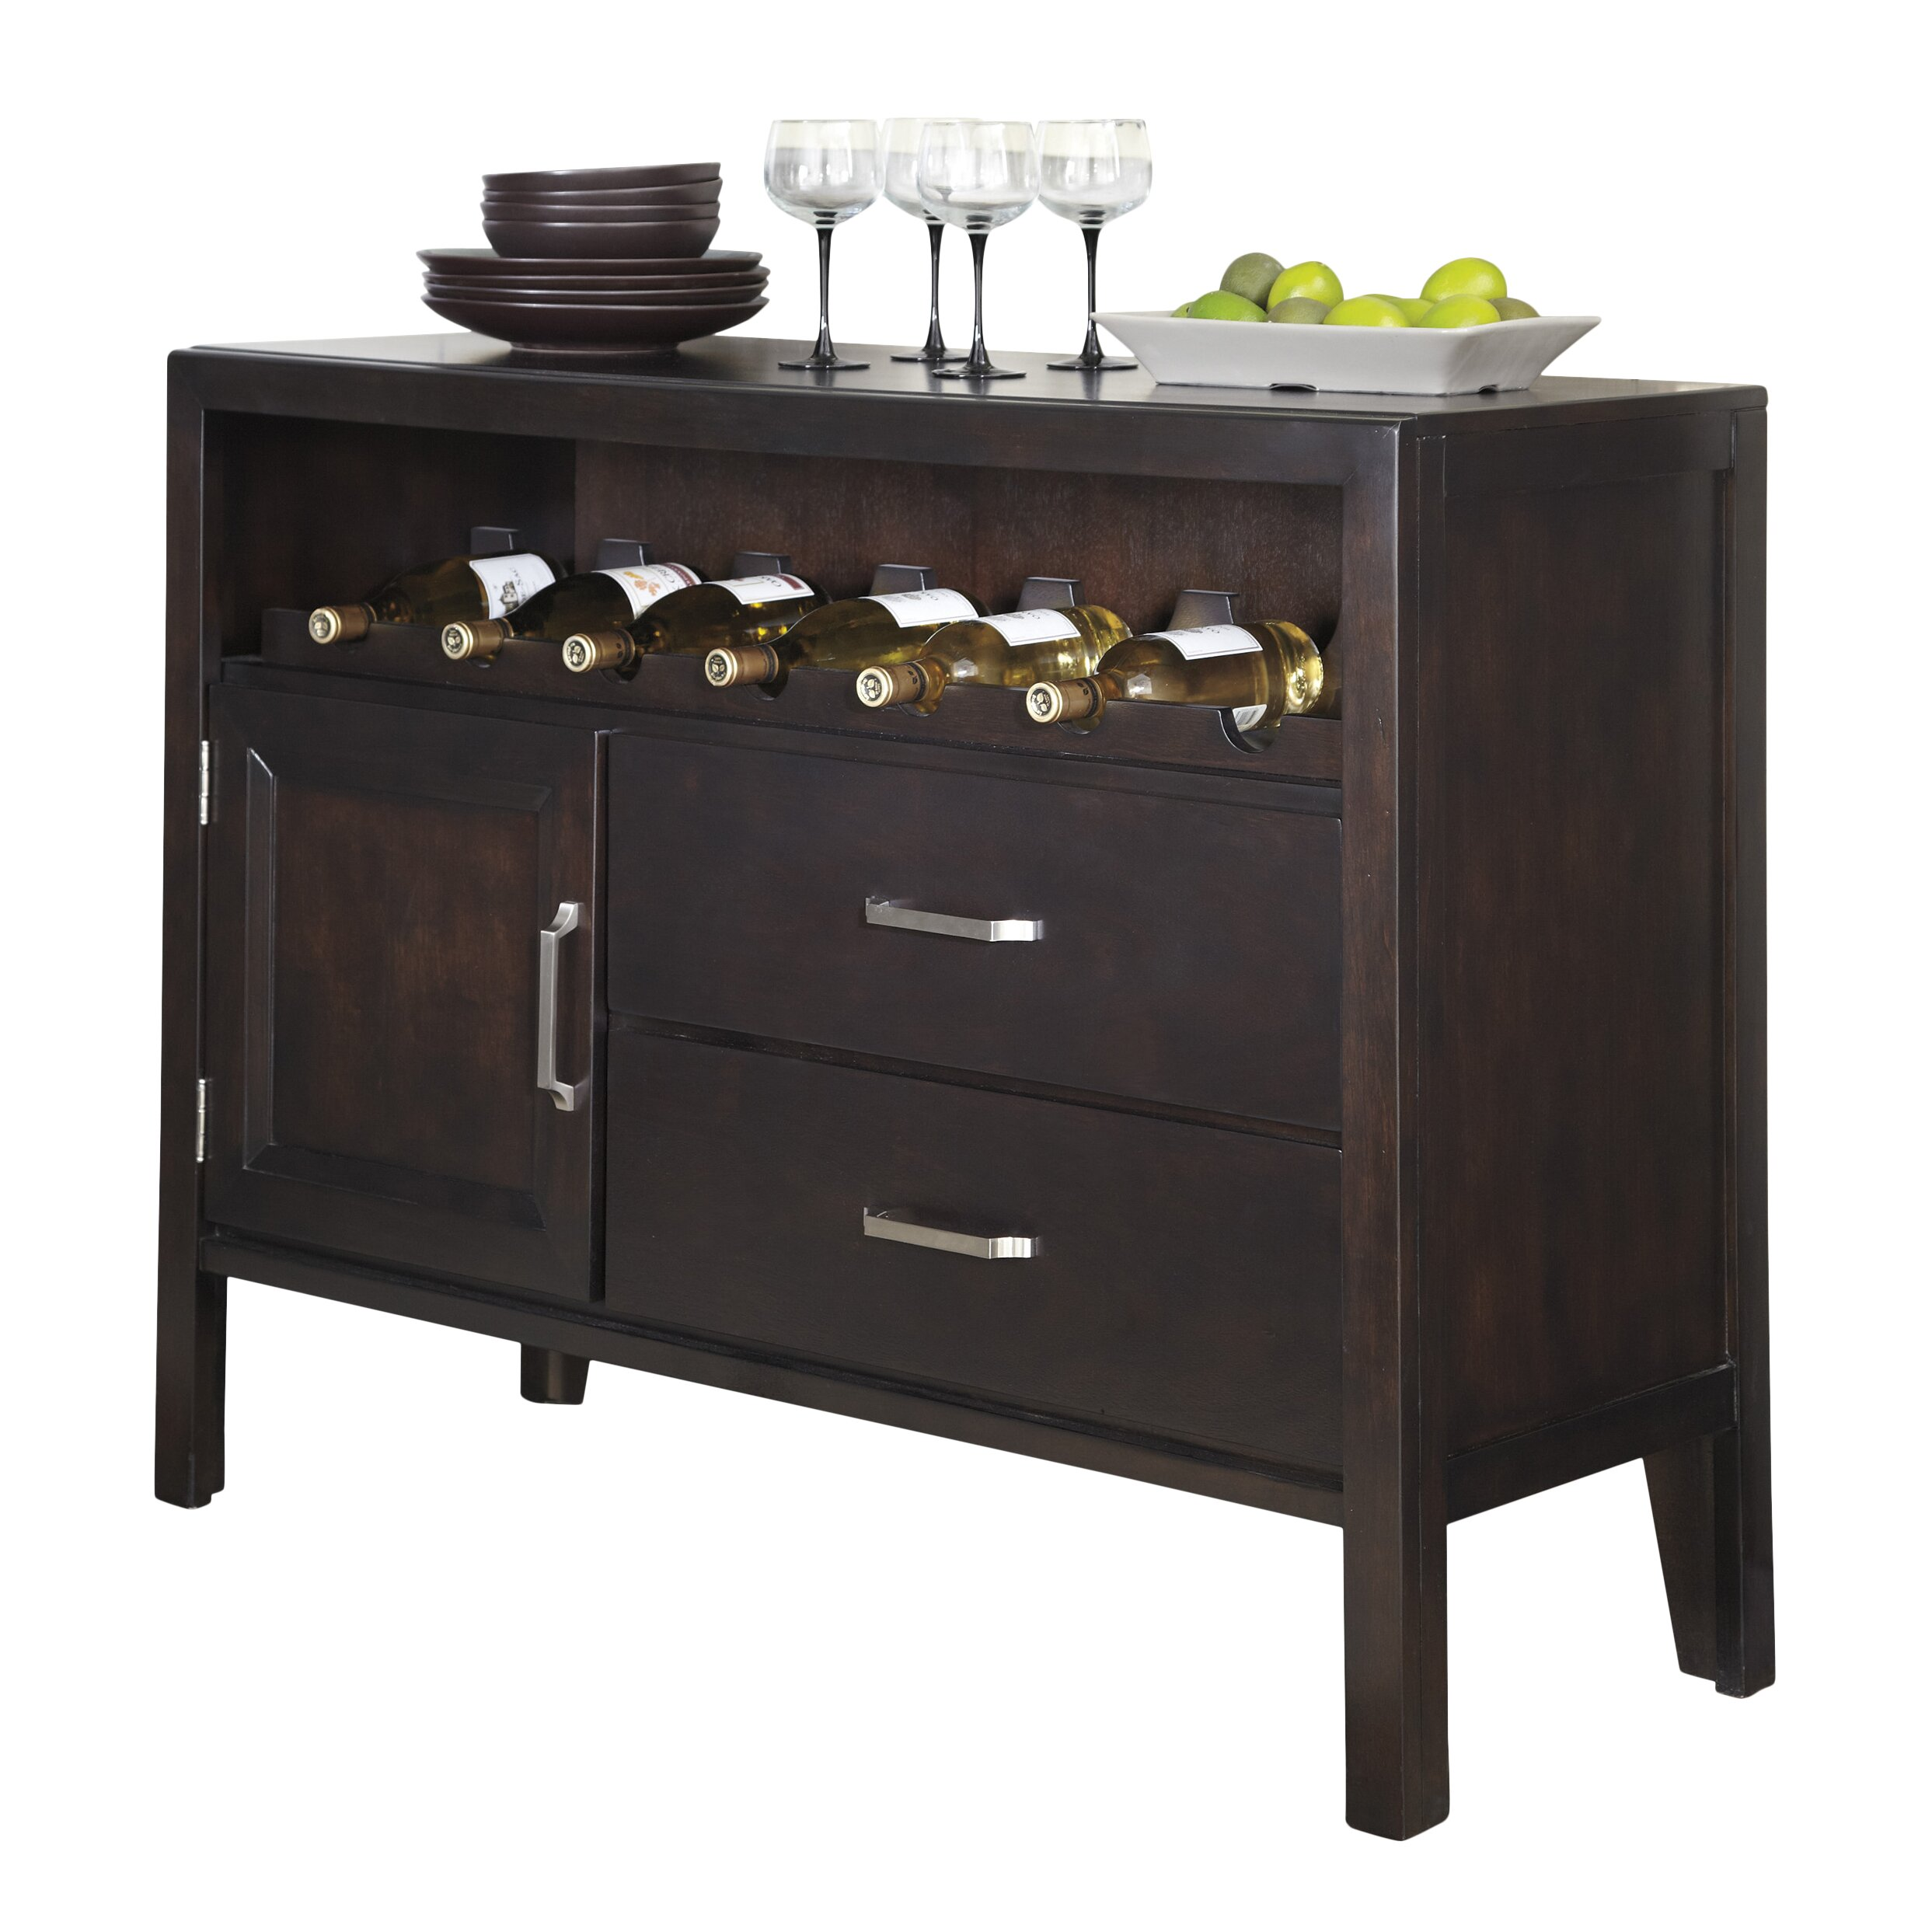 design by ashley trishelle dining room server reviews